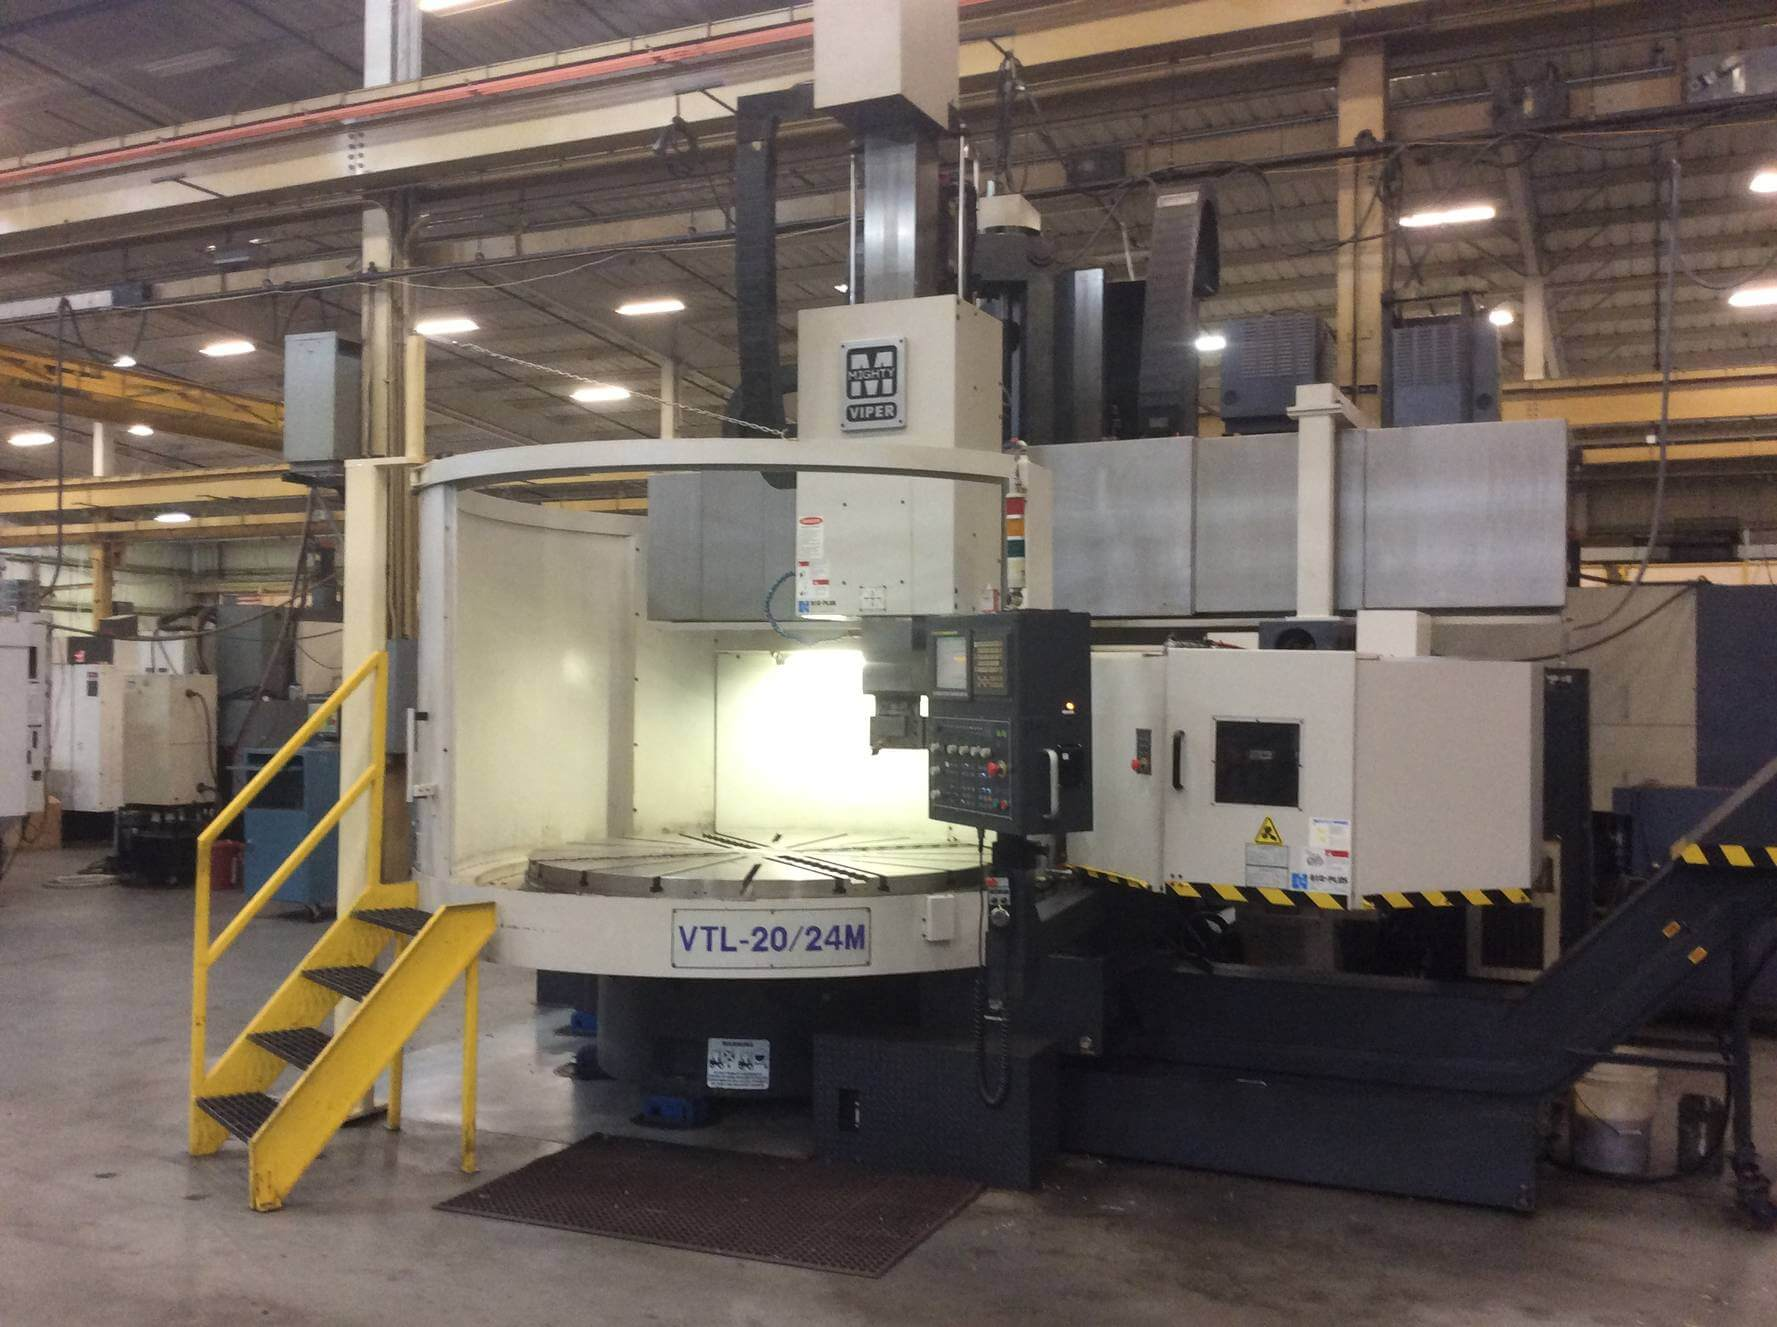 MIGHTY VIPER VTL-20/24M VTL with Milling